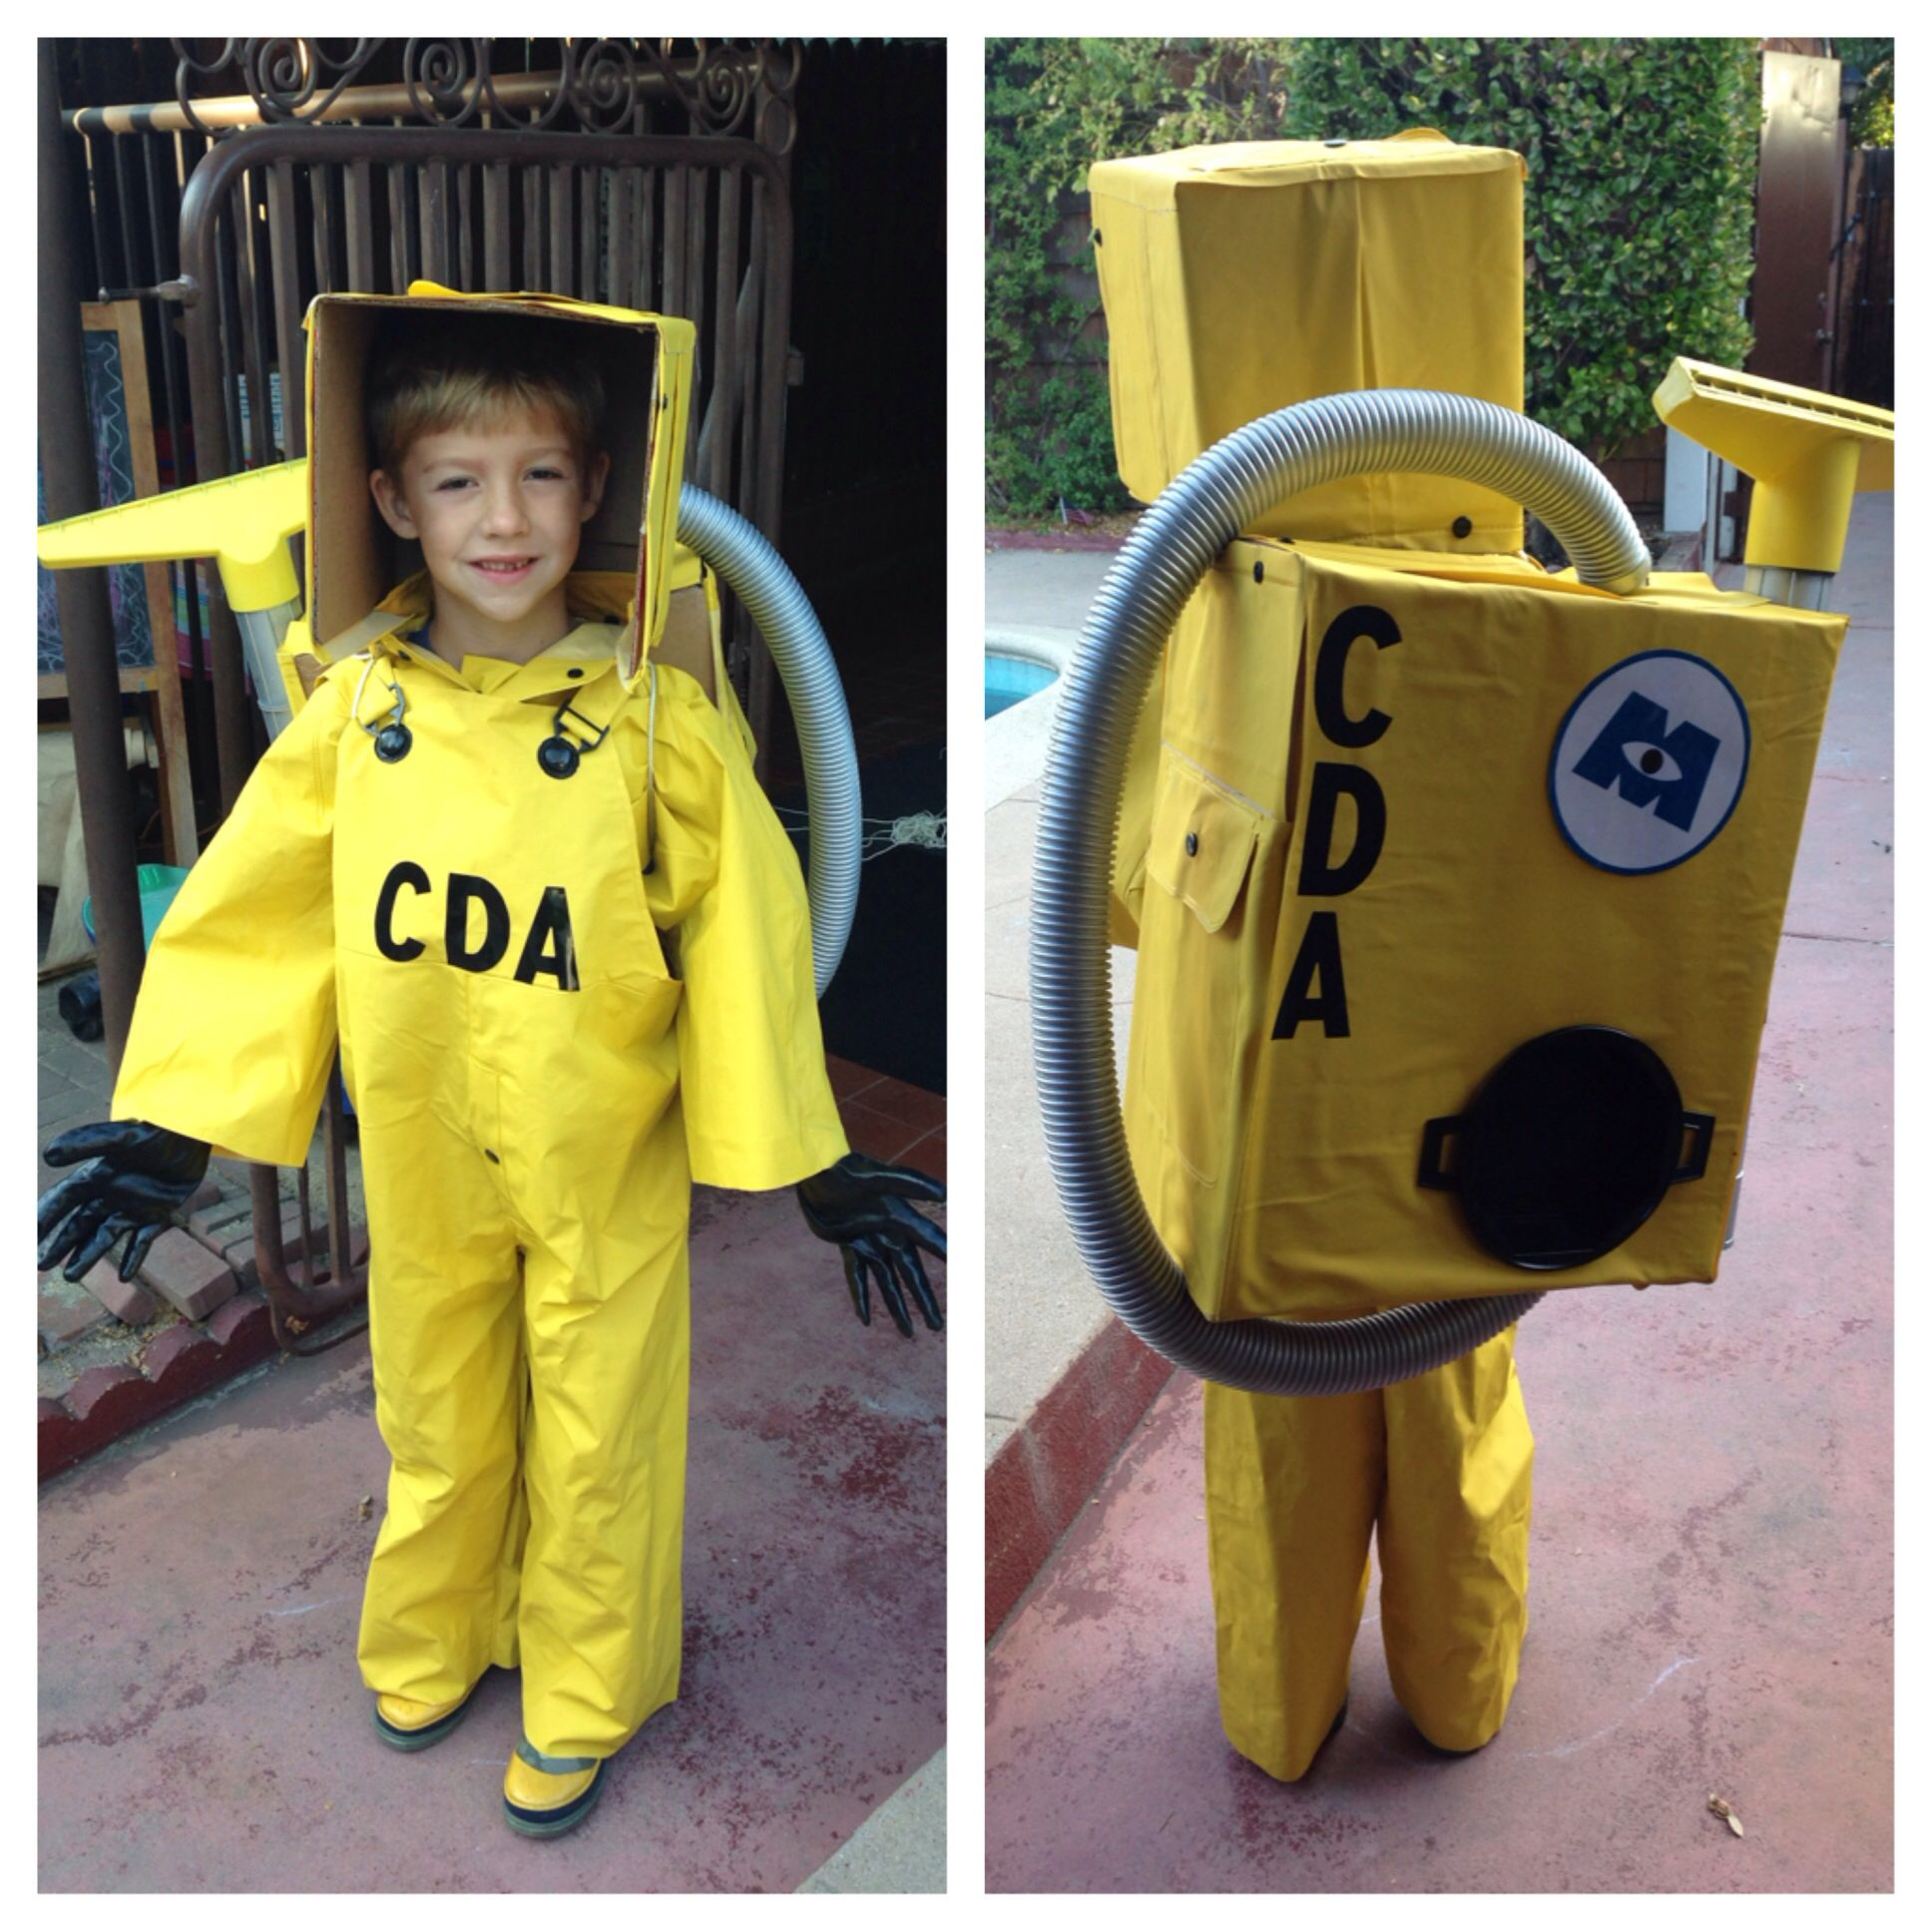 made a cda costume (monsters inc) for my oldest son. my other two